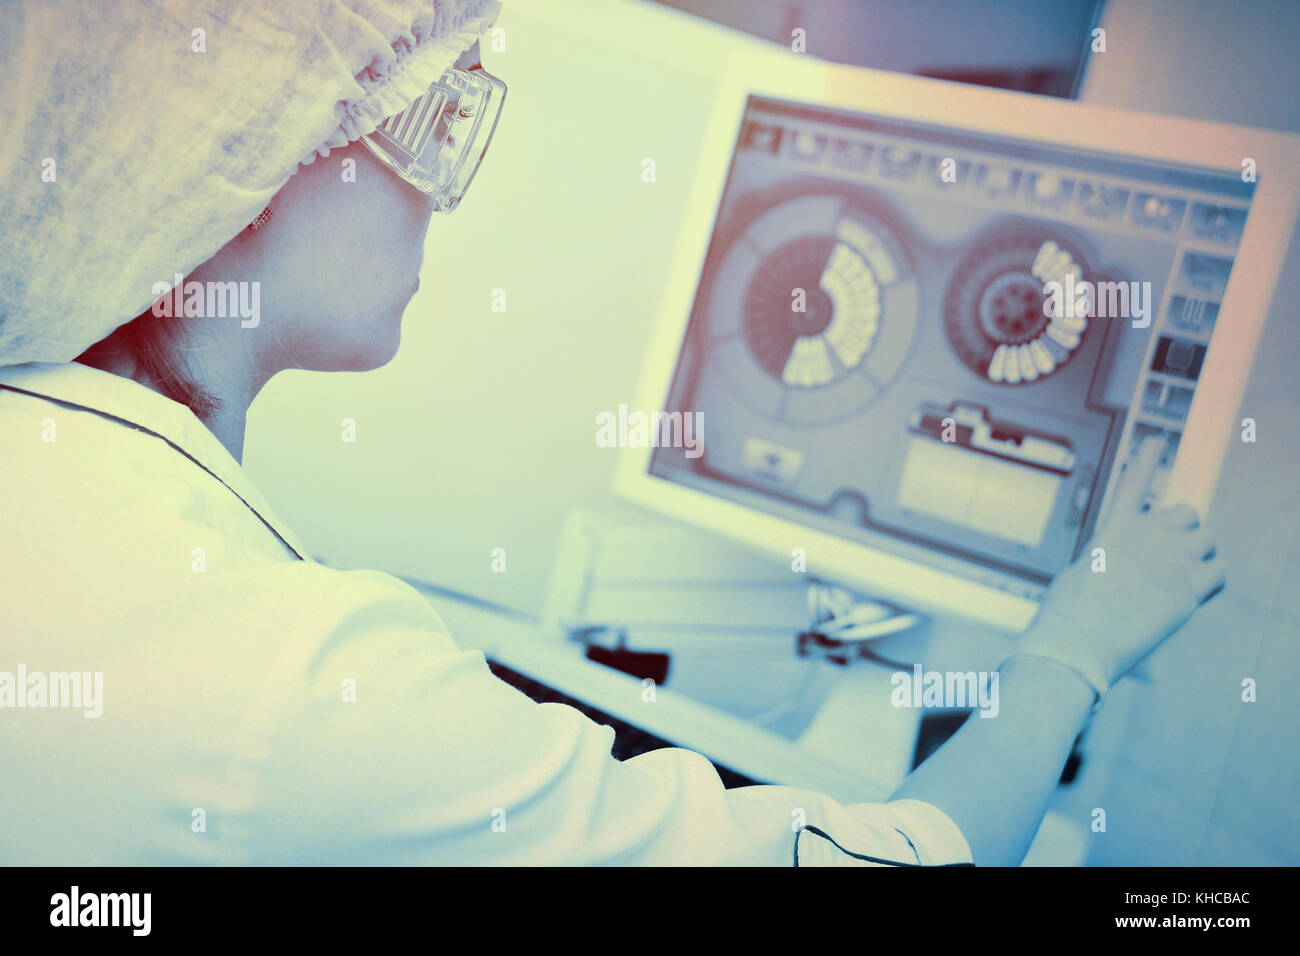 lab assistant presses the touch screen monitor in the laboratory - Stock Image